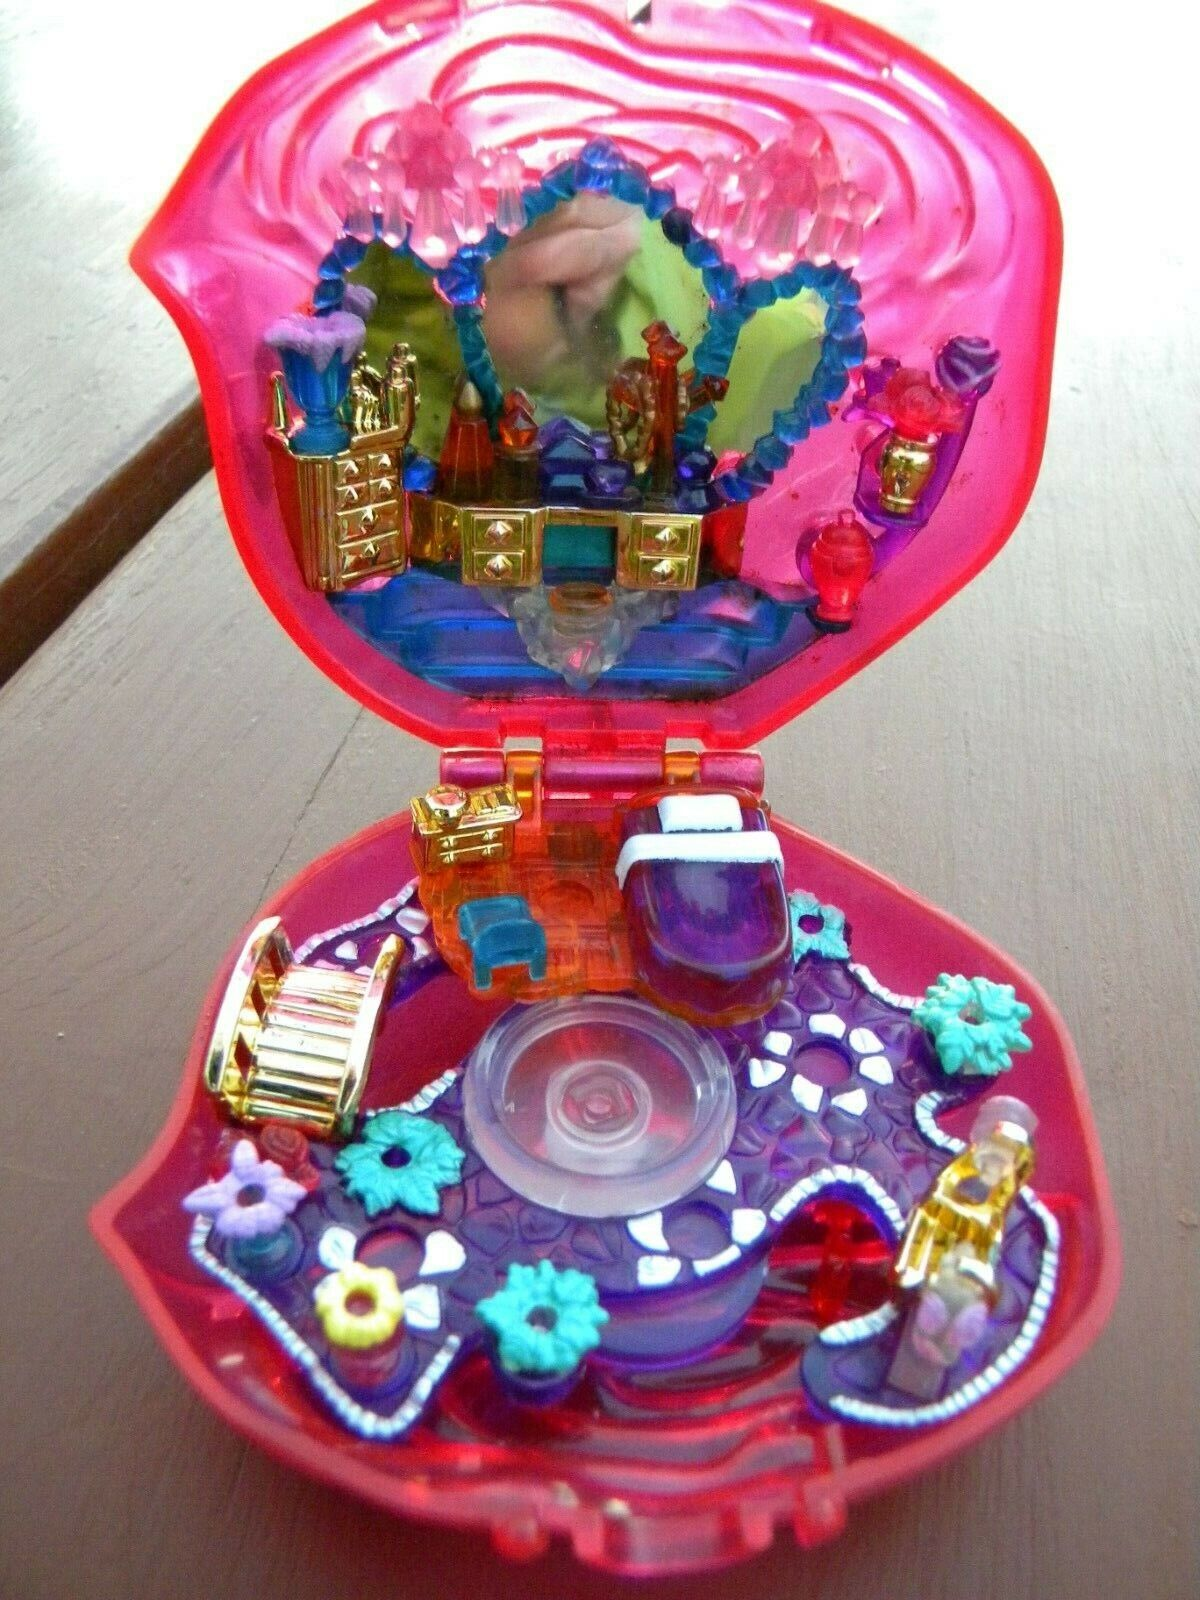 Polly Pocket Bluebird Sweet Roses With Doll Accessories - $31.95